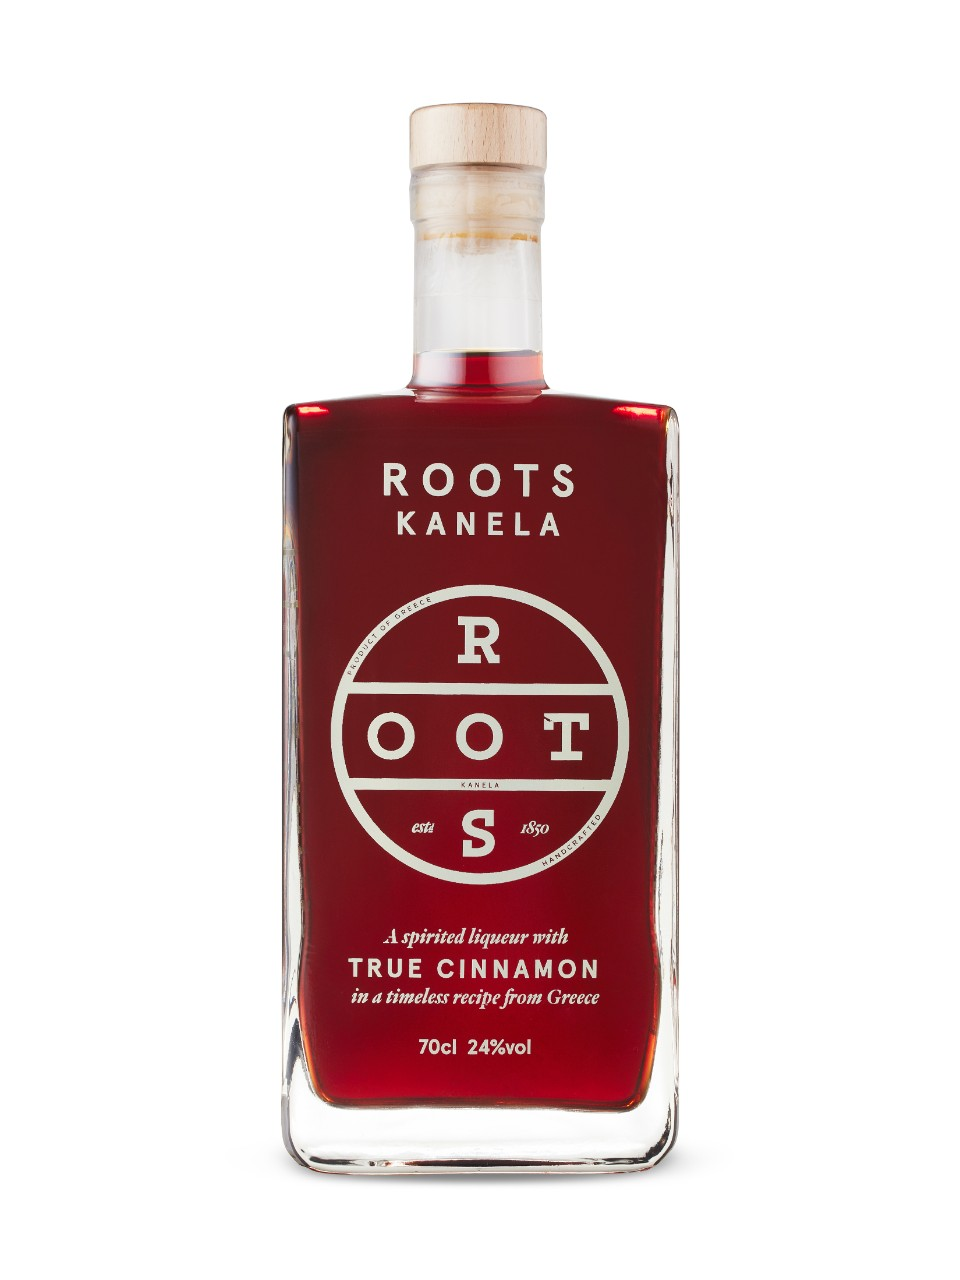 Roots Kanela True Cinnamon